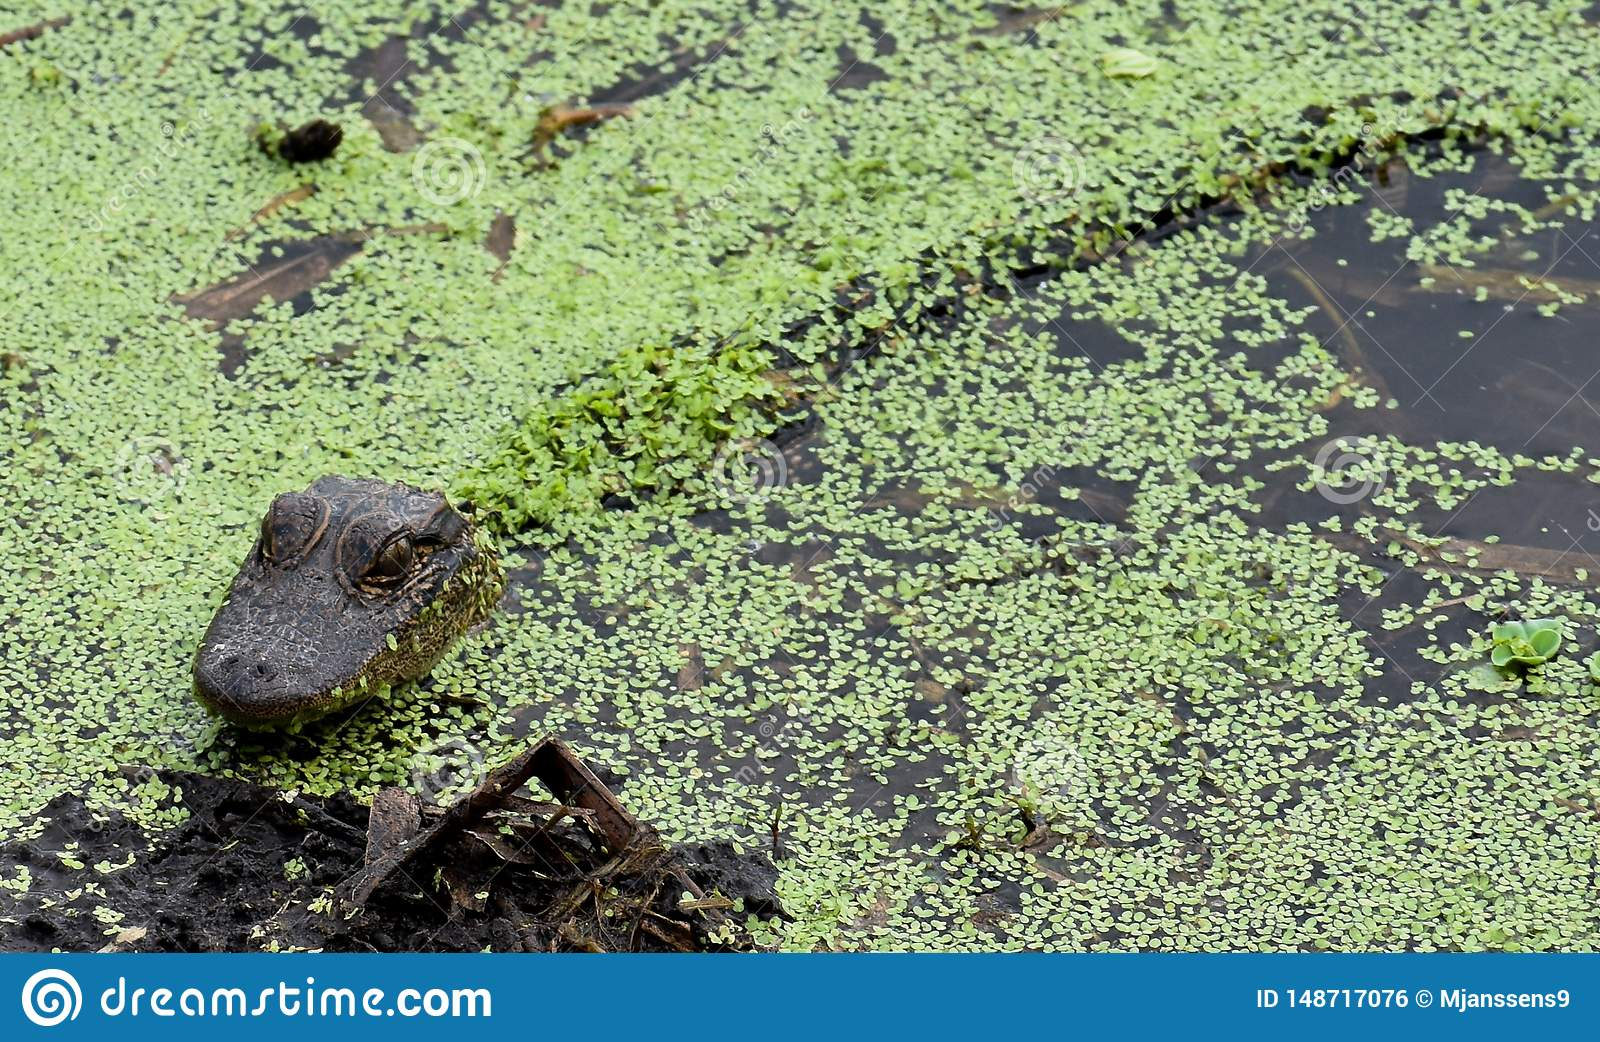 Alligators and Baby Alligators Under the Cover of Leaves in Florida`s Waters